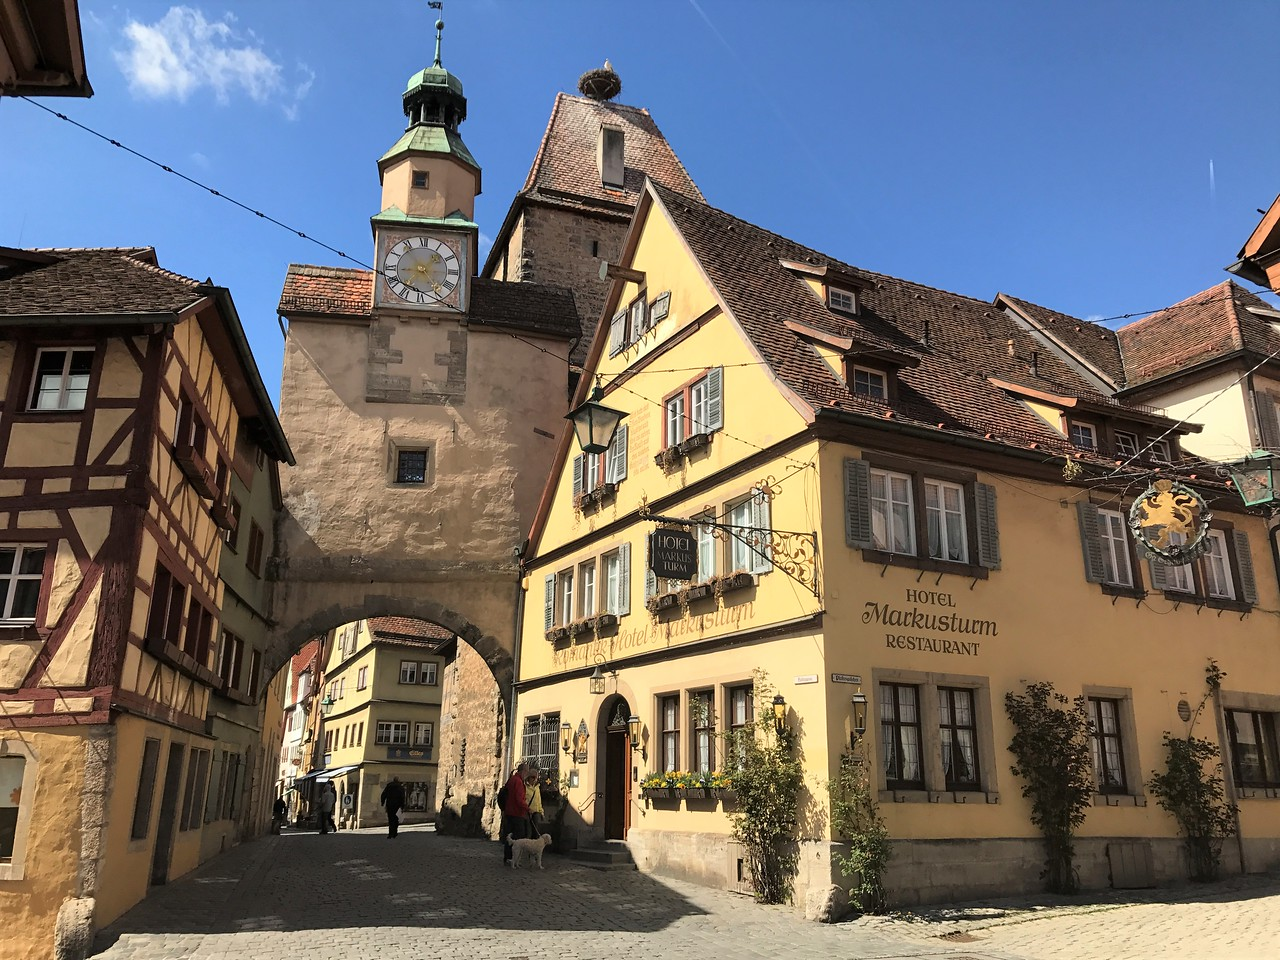 """Our hotel was the Marusturm, built into the told town wall at the Markusturm Tower.  It dates to 1200 when it was """"an inn for weary travelers"""".  The accommodations were modern and one of our favorites."""